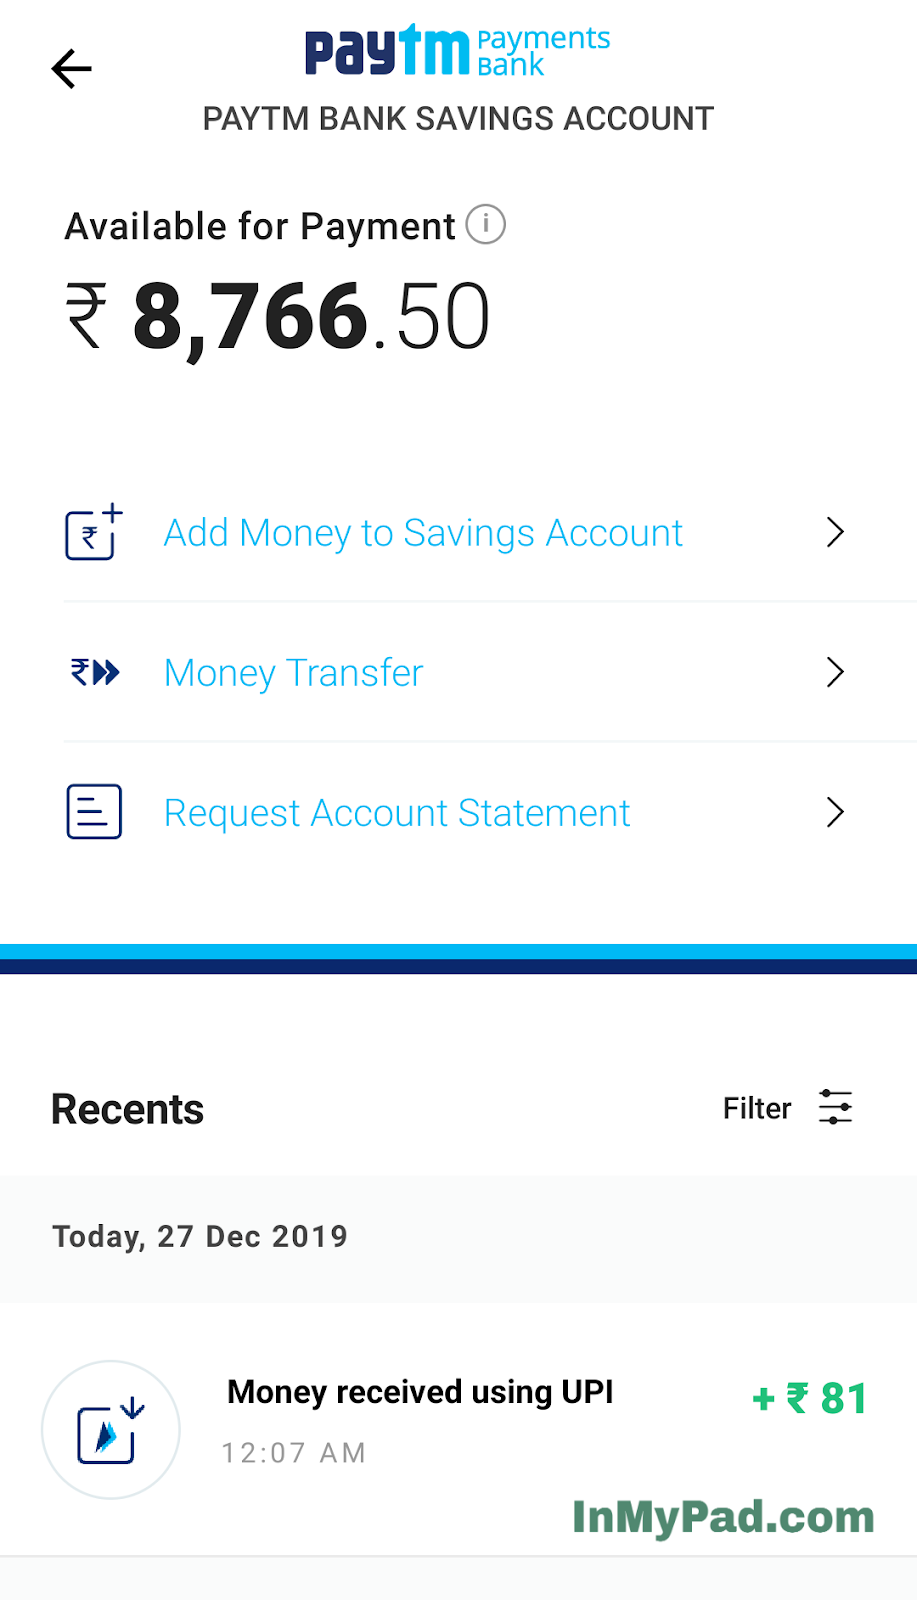 paytm payments bank statement